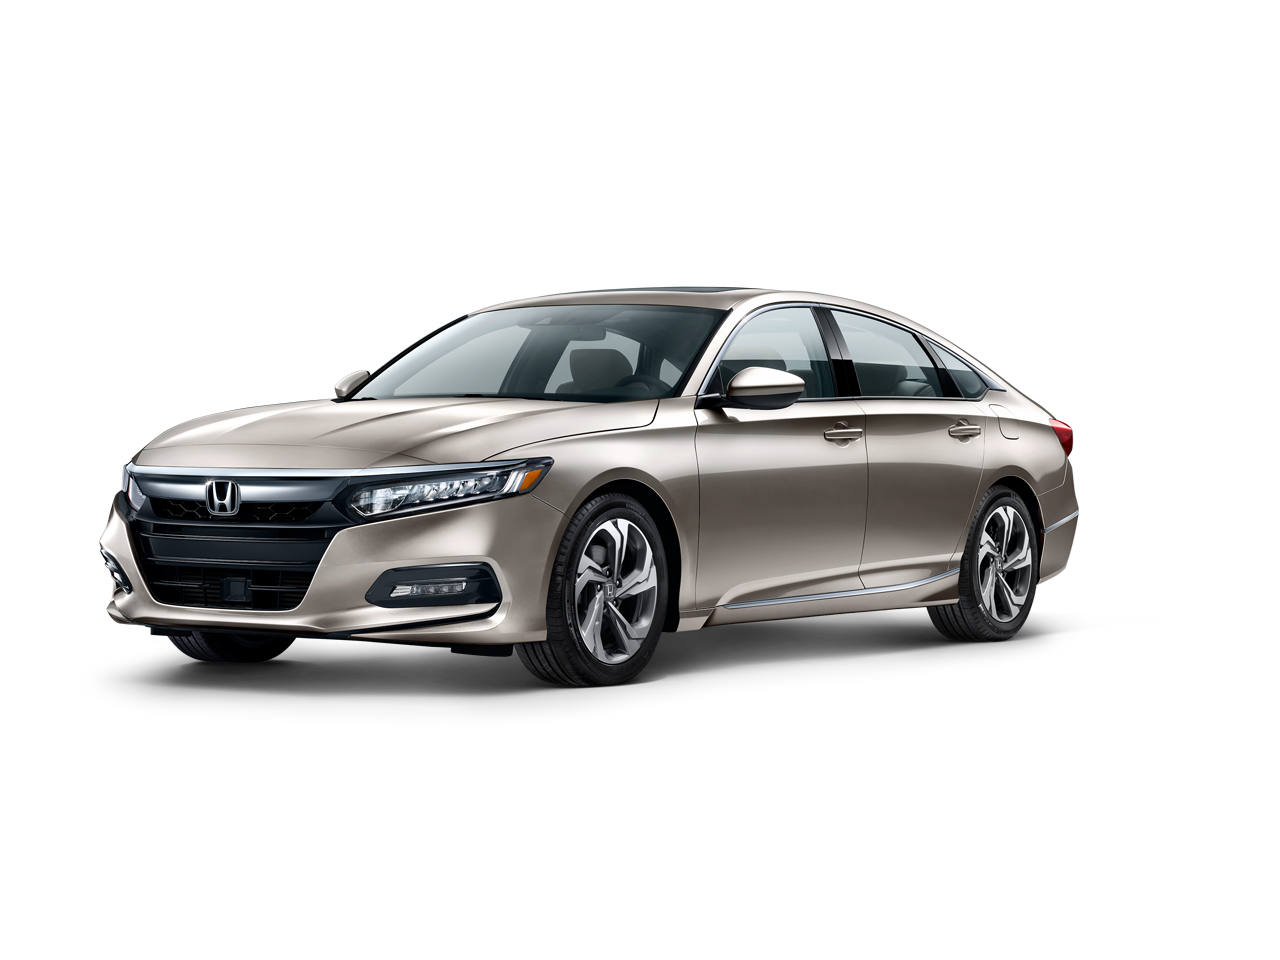 2019 Accord EX